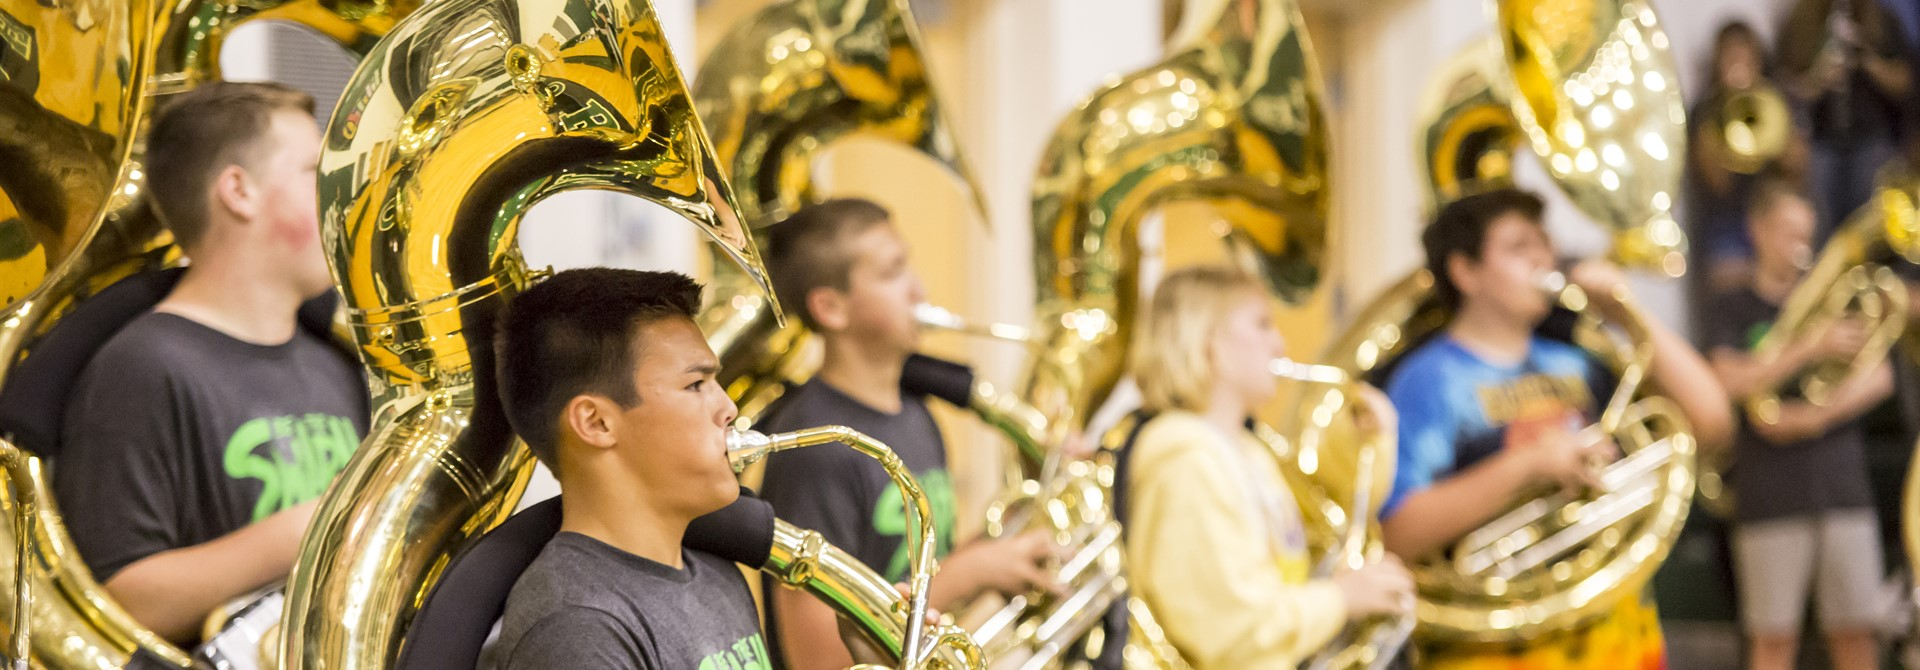 Students Playing the Tuba Section